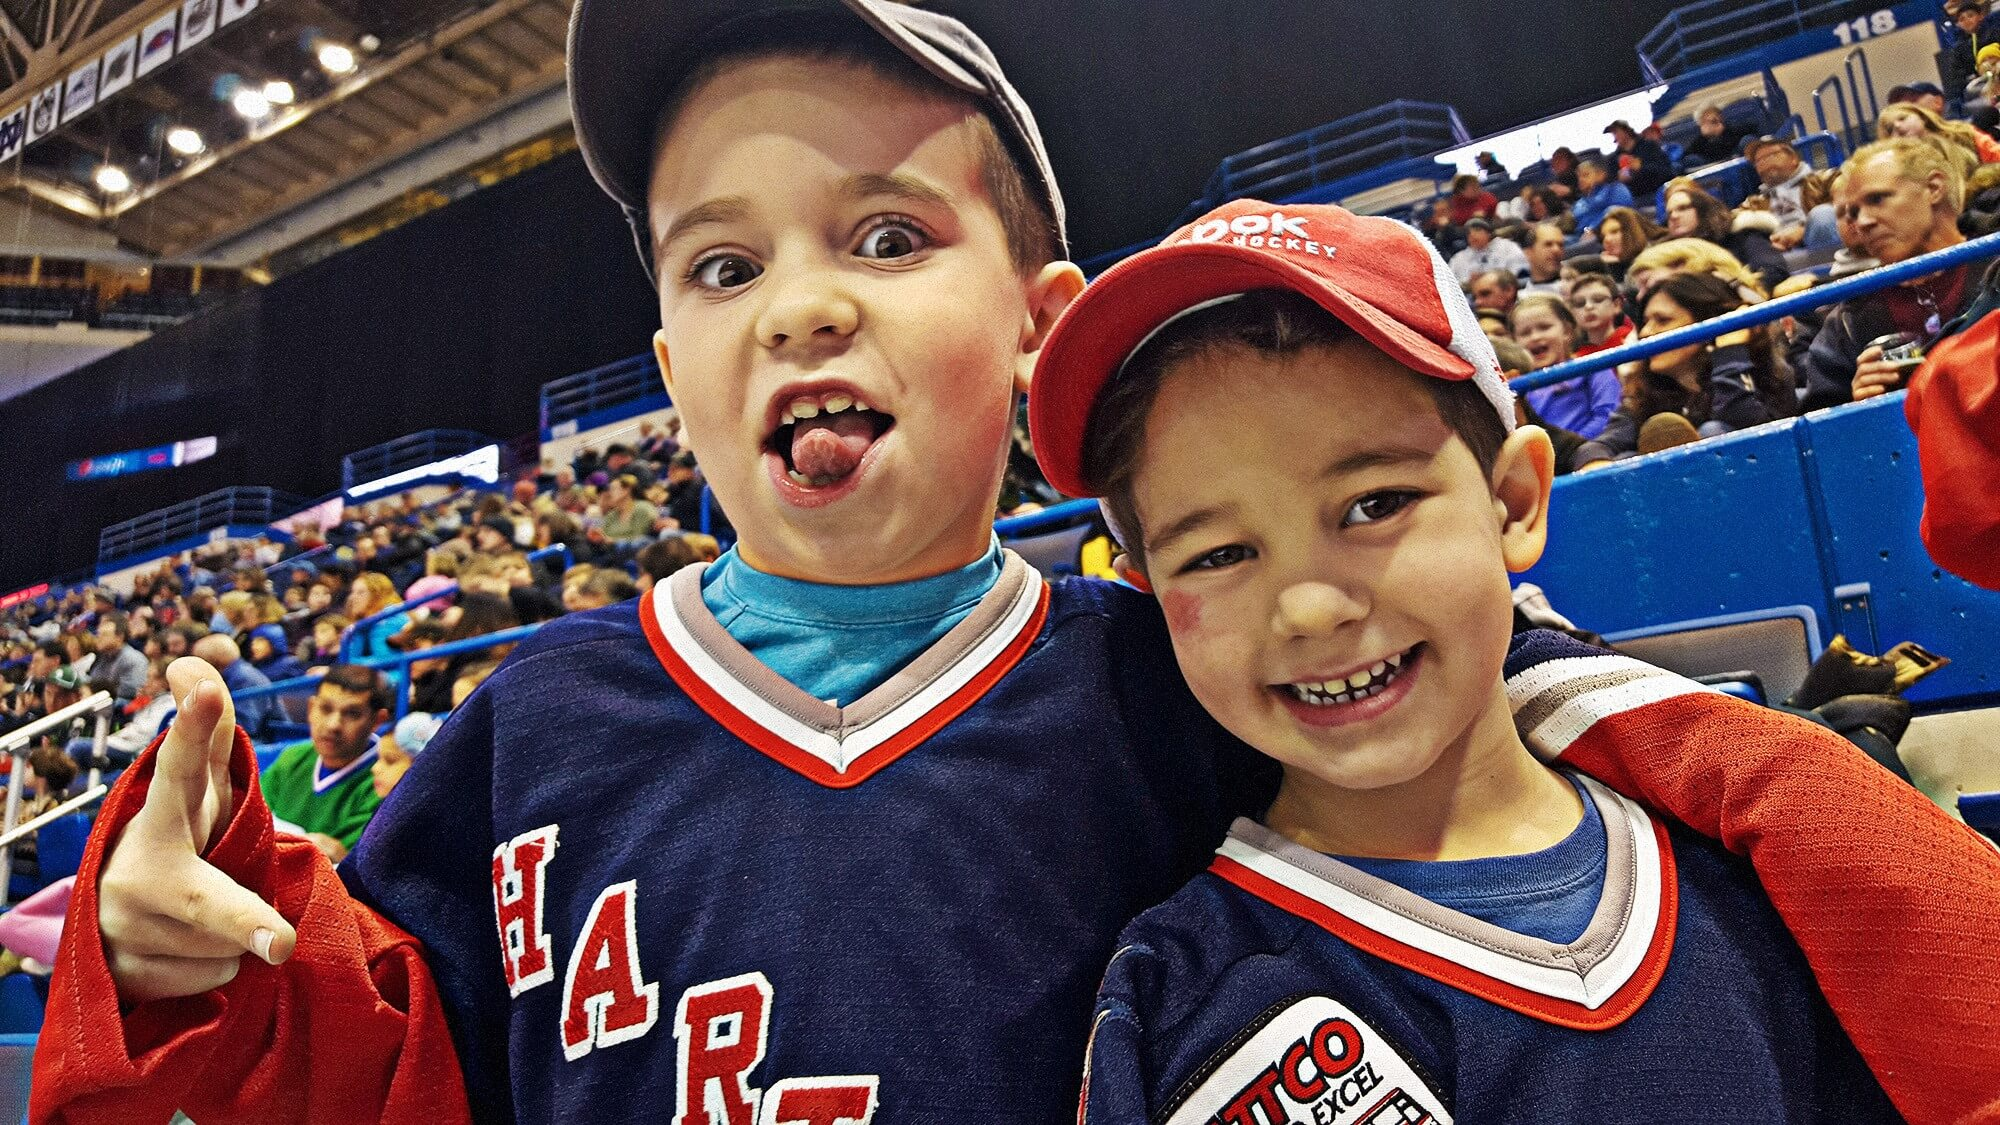 Duncan & Henrik Rutsch cheer on the Hartford Wolf Pack